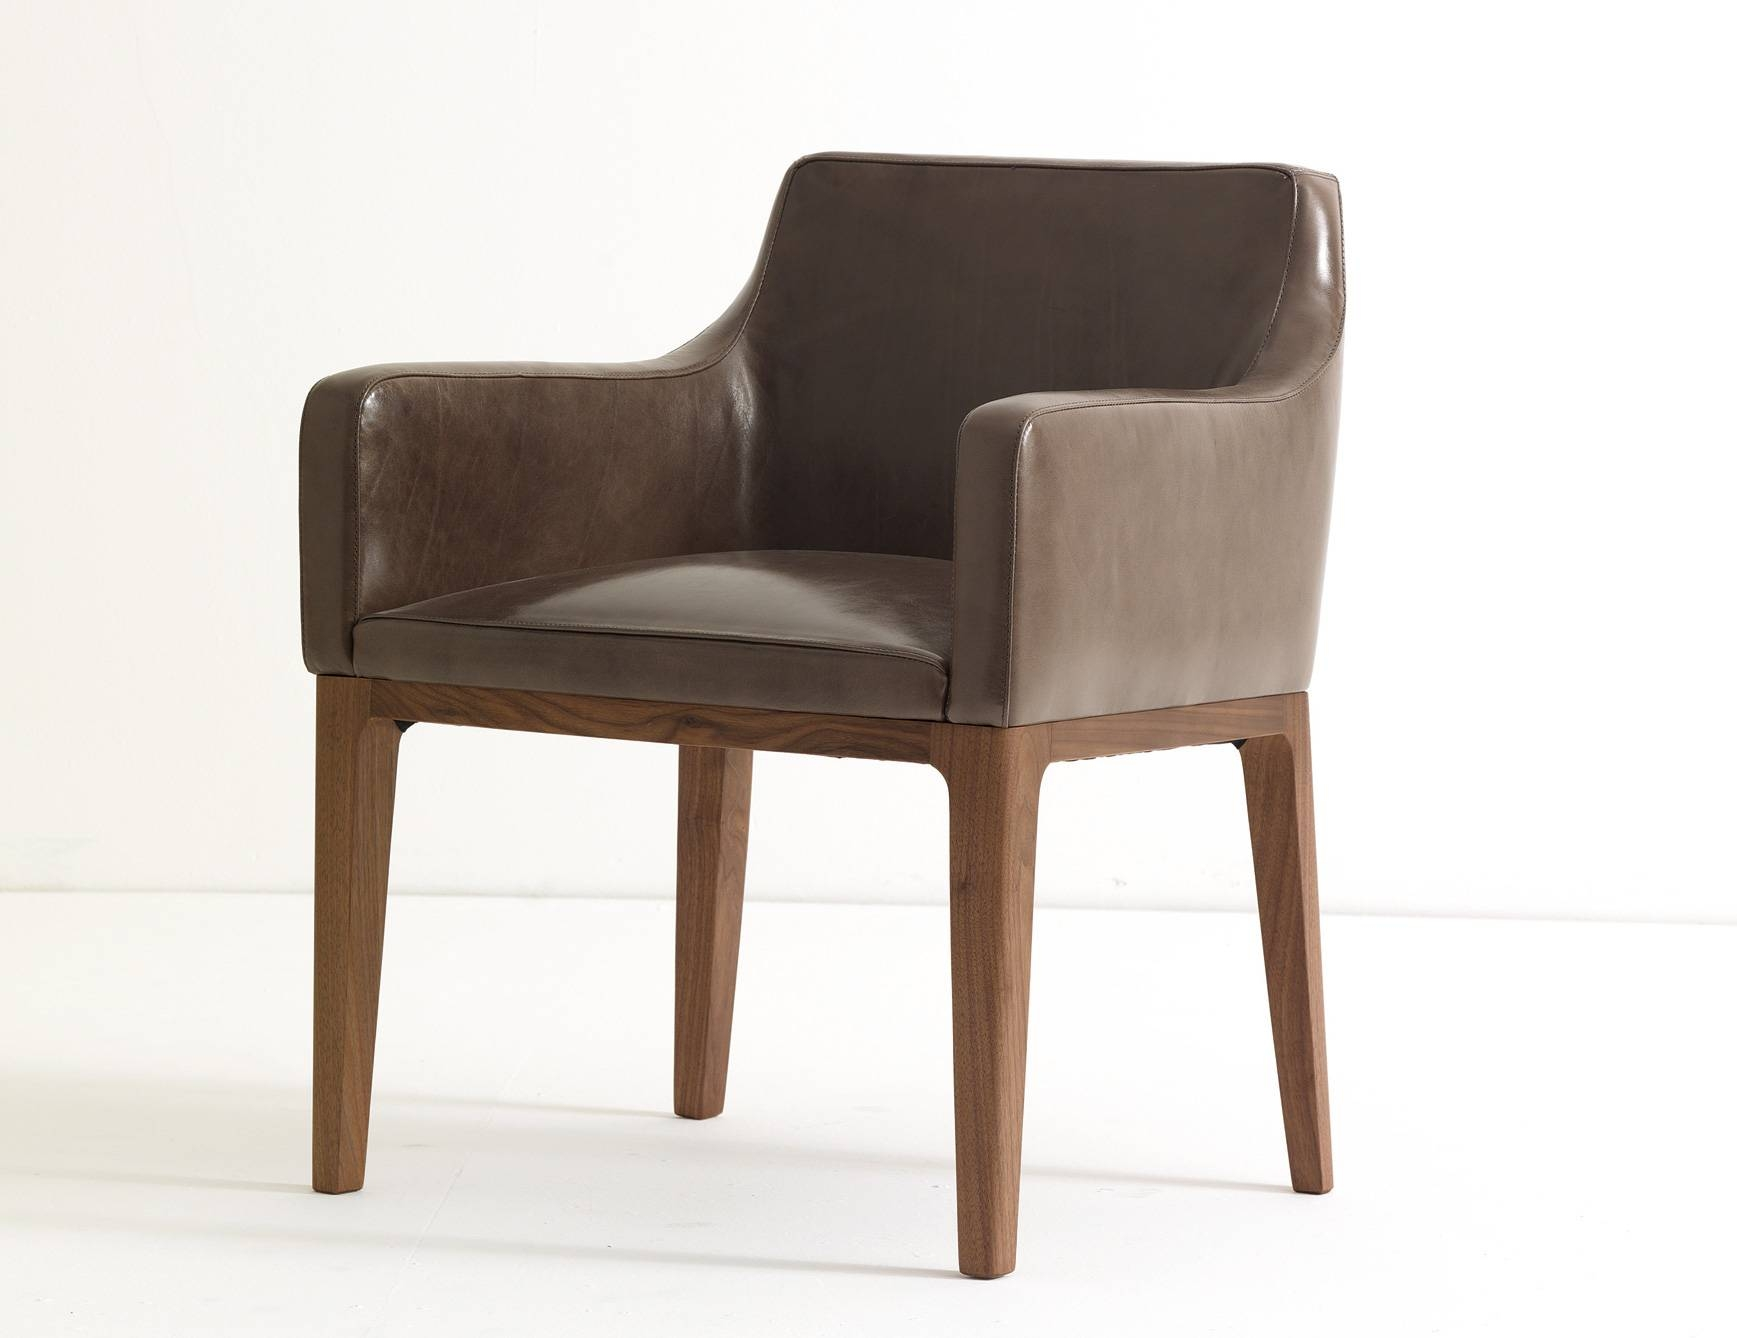 small arm chair metal with wood seat 30 collection of chairs